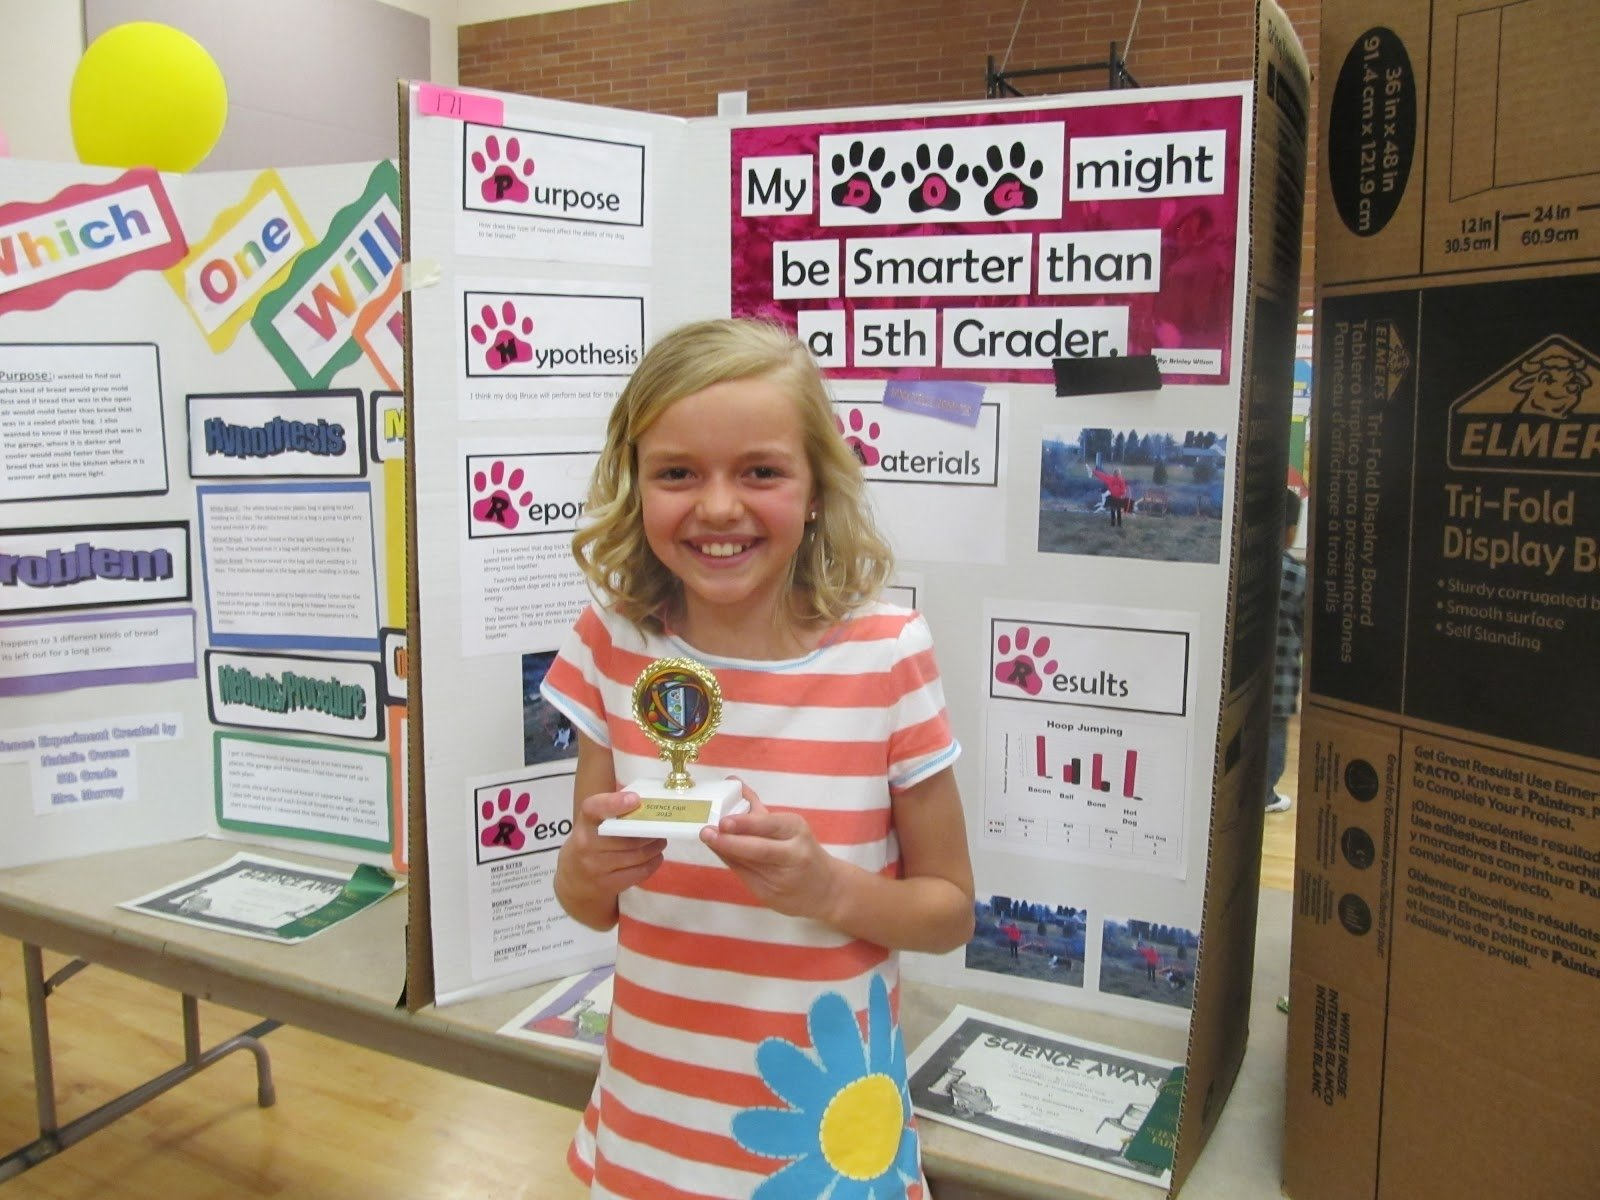 10 Fabulous Science Fair Projects Ideas For 5Th Grade science fair projects on space the science of my life updated declo